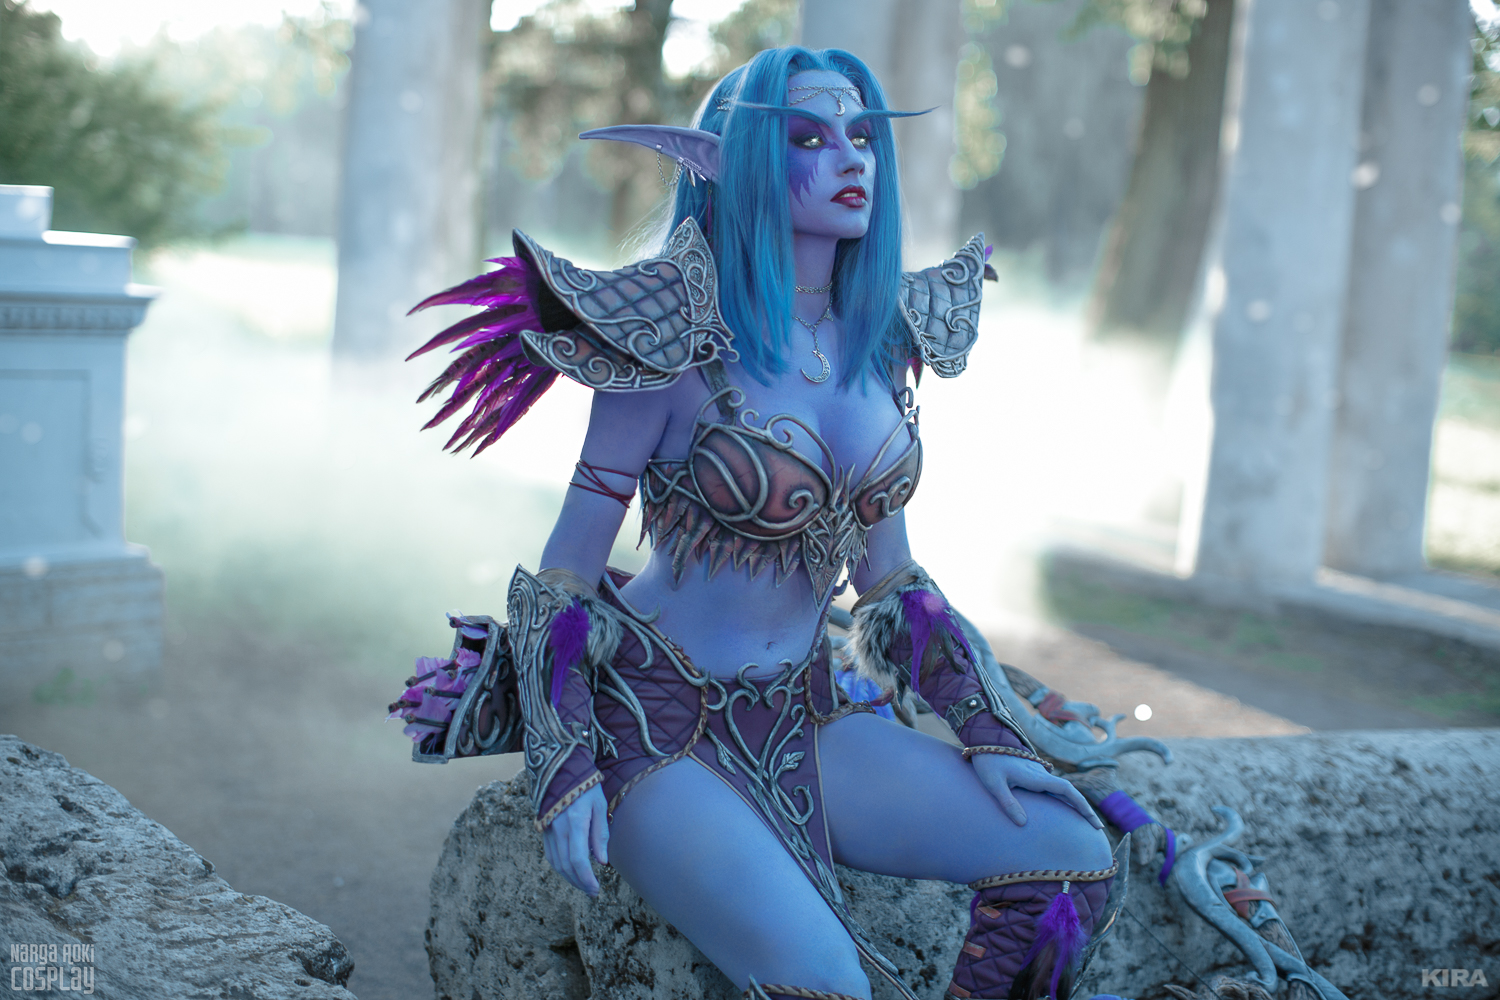 tyrande_whisperwind___war_of_the_ancients_by_narga_lifestream-dbn49x3.jpg